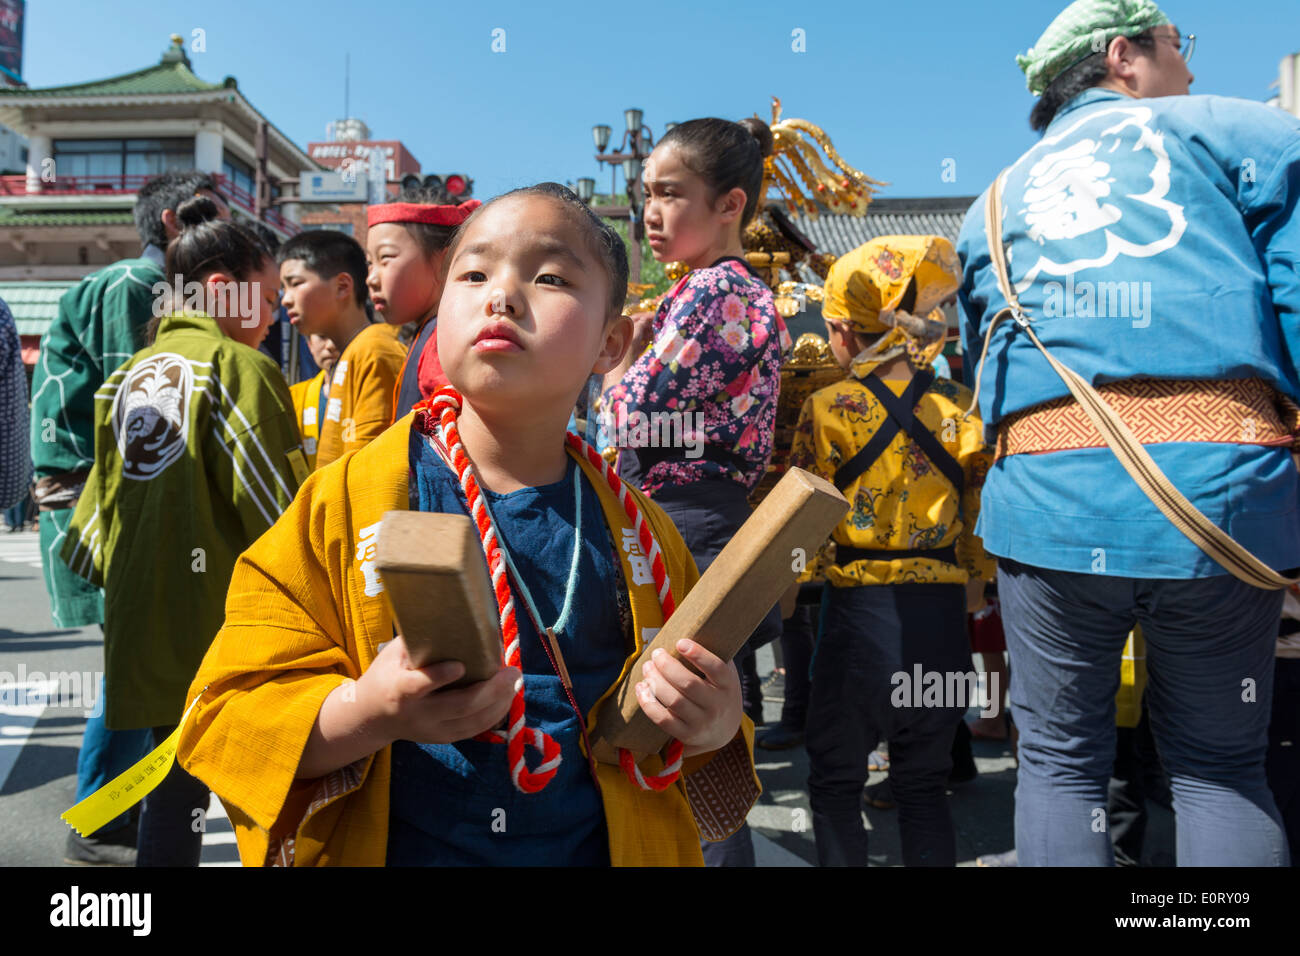 Young girl in a happi with hyoshigi at Sanja Matsuri at Sensō-ji (Asakusa Kannon Temple), Tokyo, Japan. - Stock Image